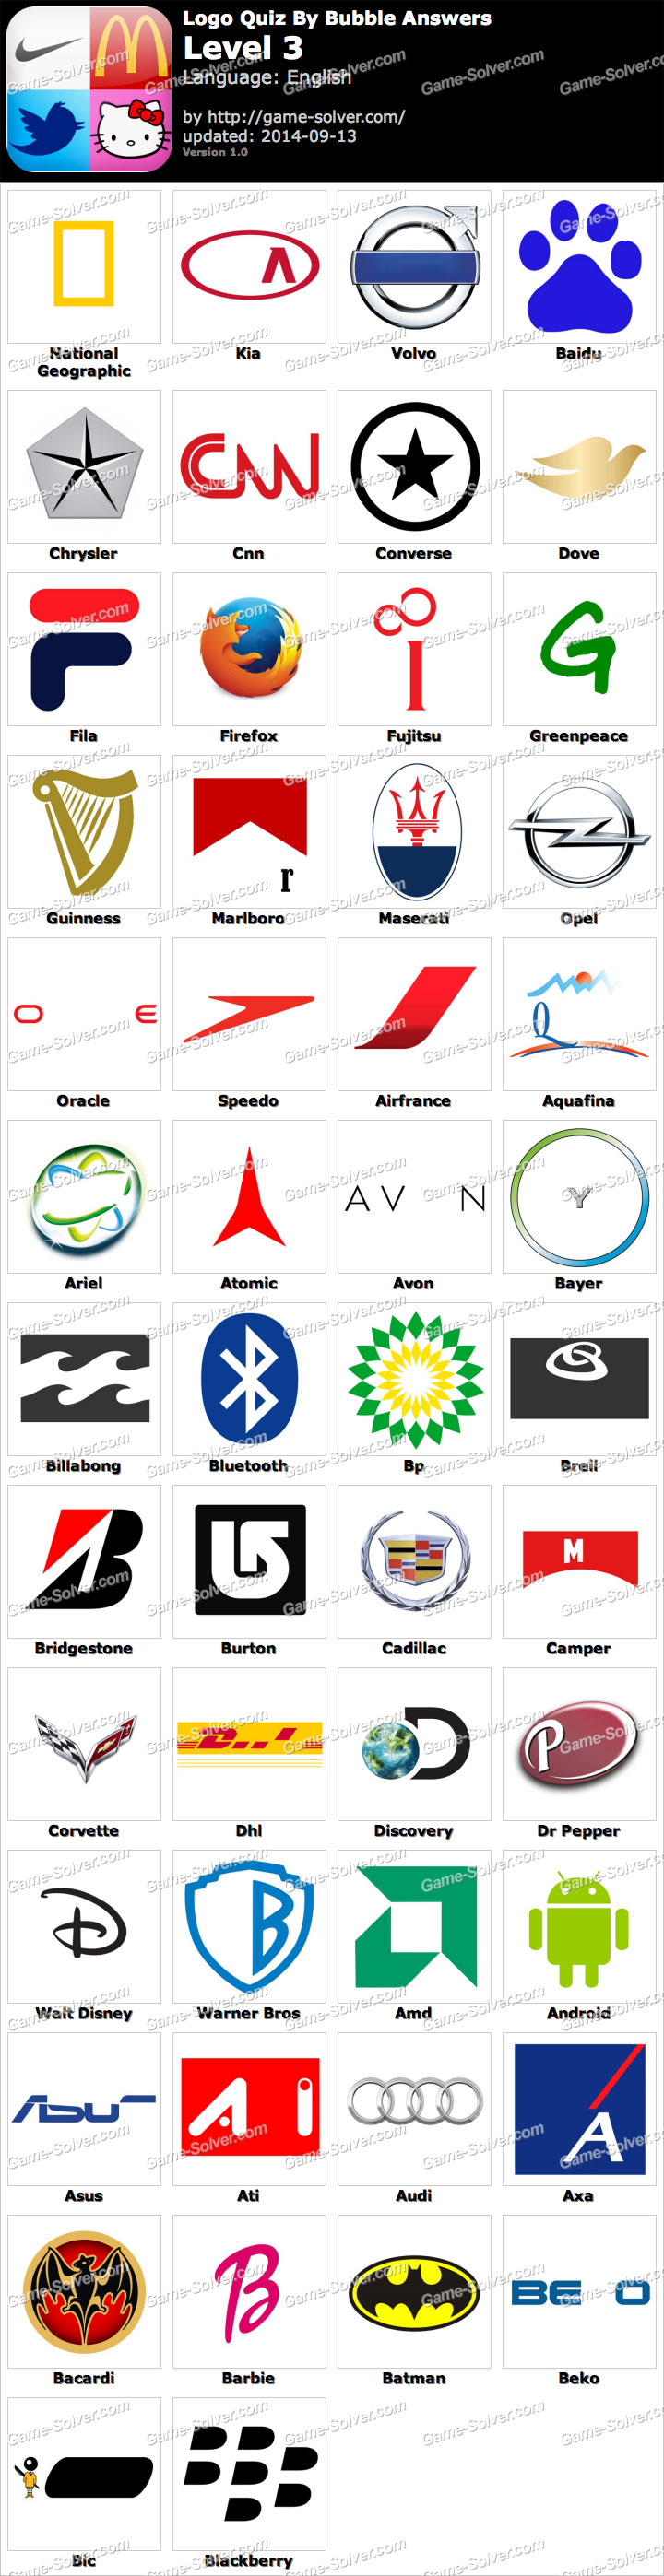 Logo Quiz By Bubble Answers Level 3 - Game Solver